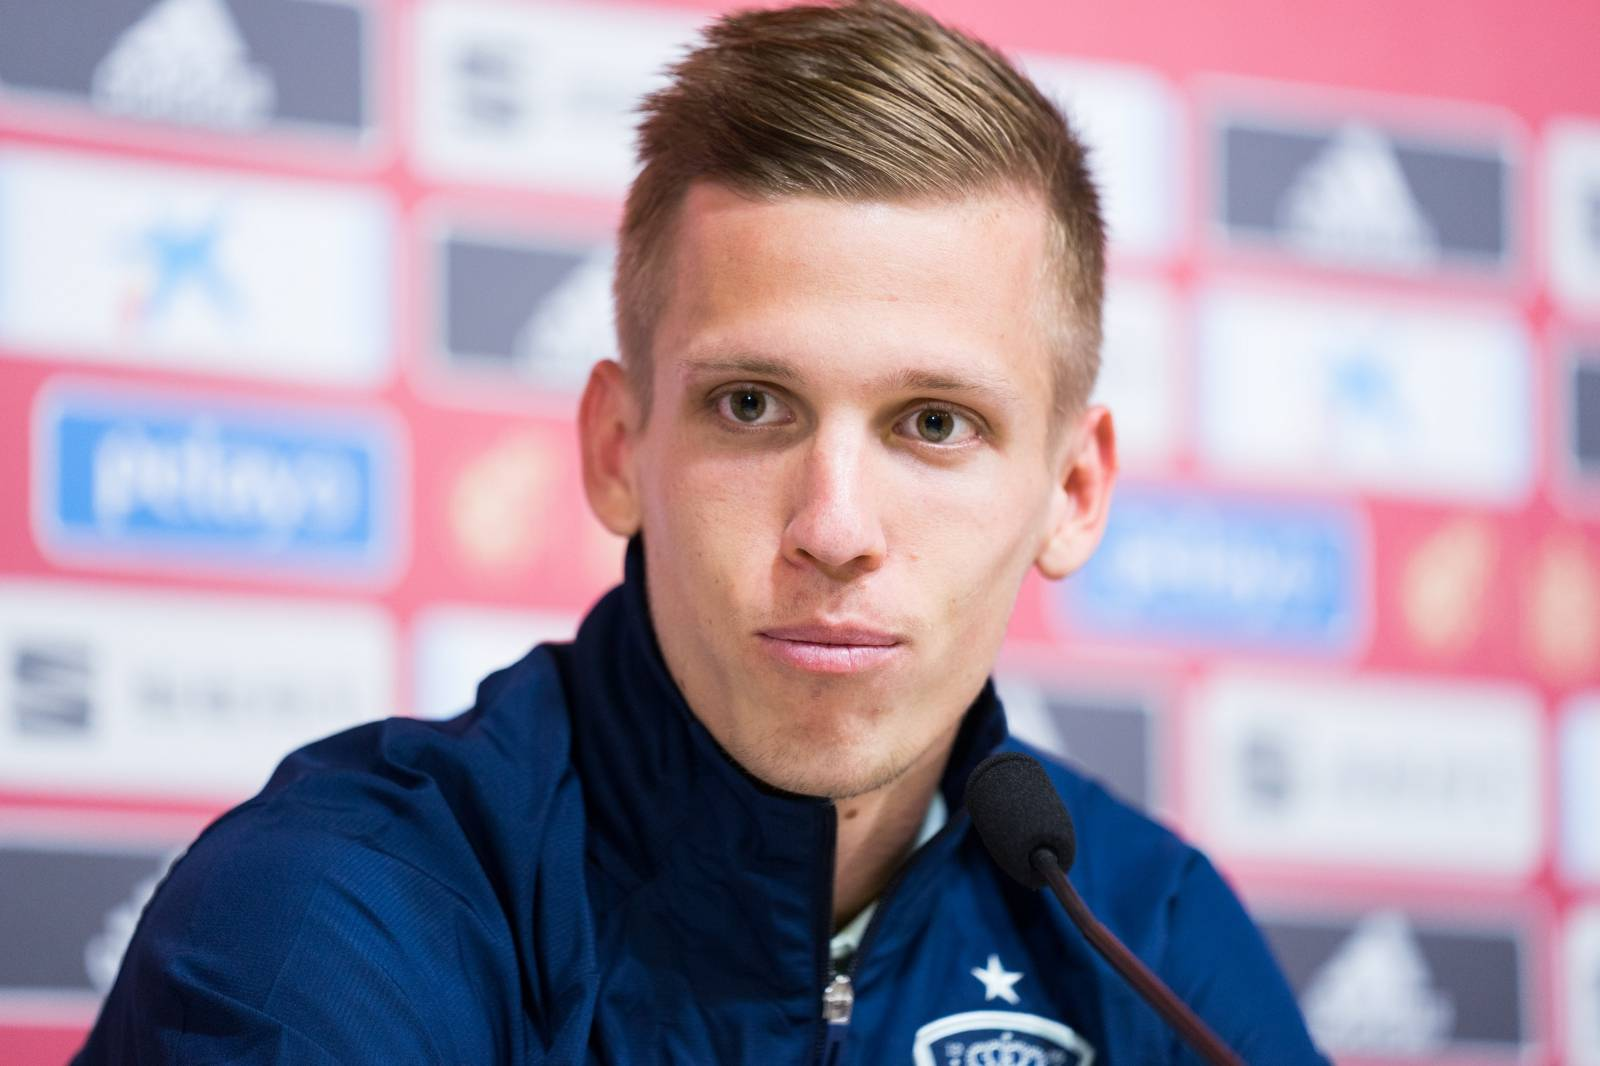 Dani Olmo attends the press conference previous to Spanish National Team of Football vs Malta and Romania